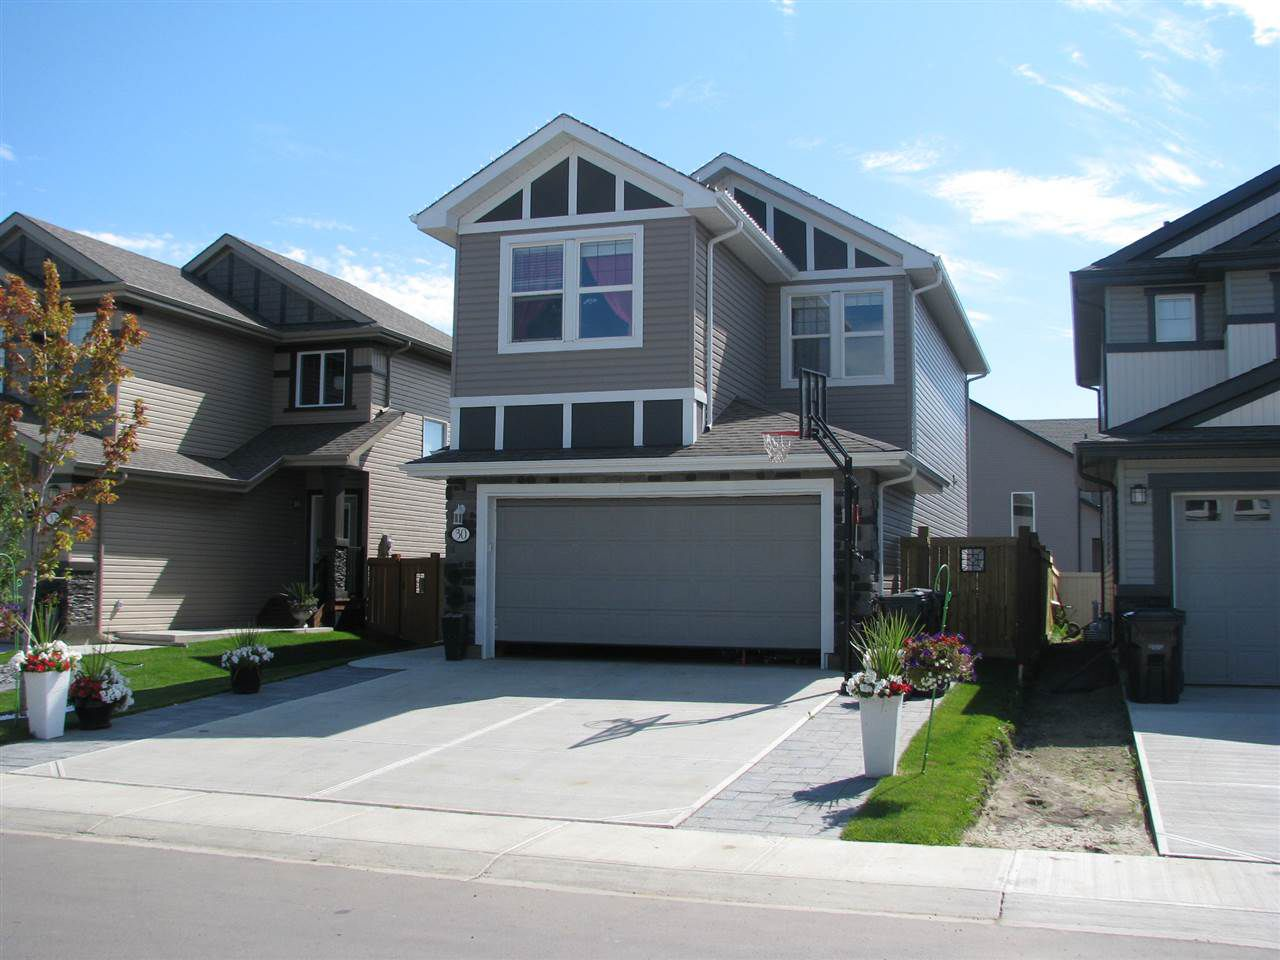 Main Photo: 30 MEADOWLAND Way: Spruce Grove House for sale : MLS®# E4156528